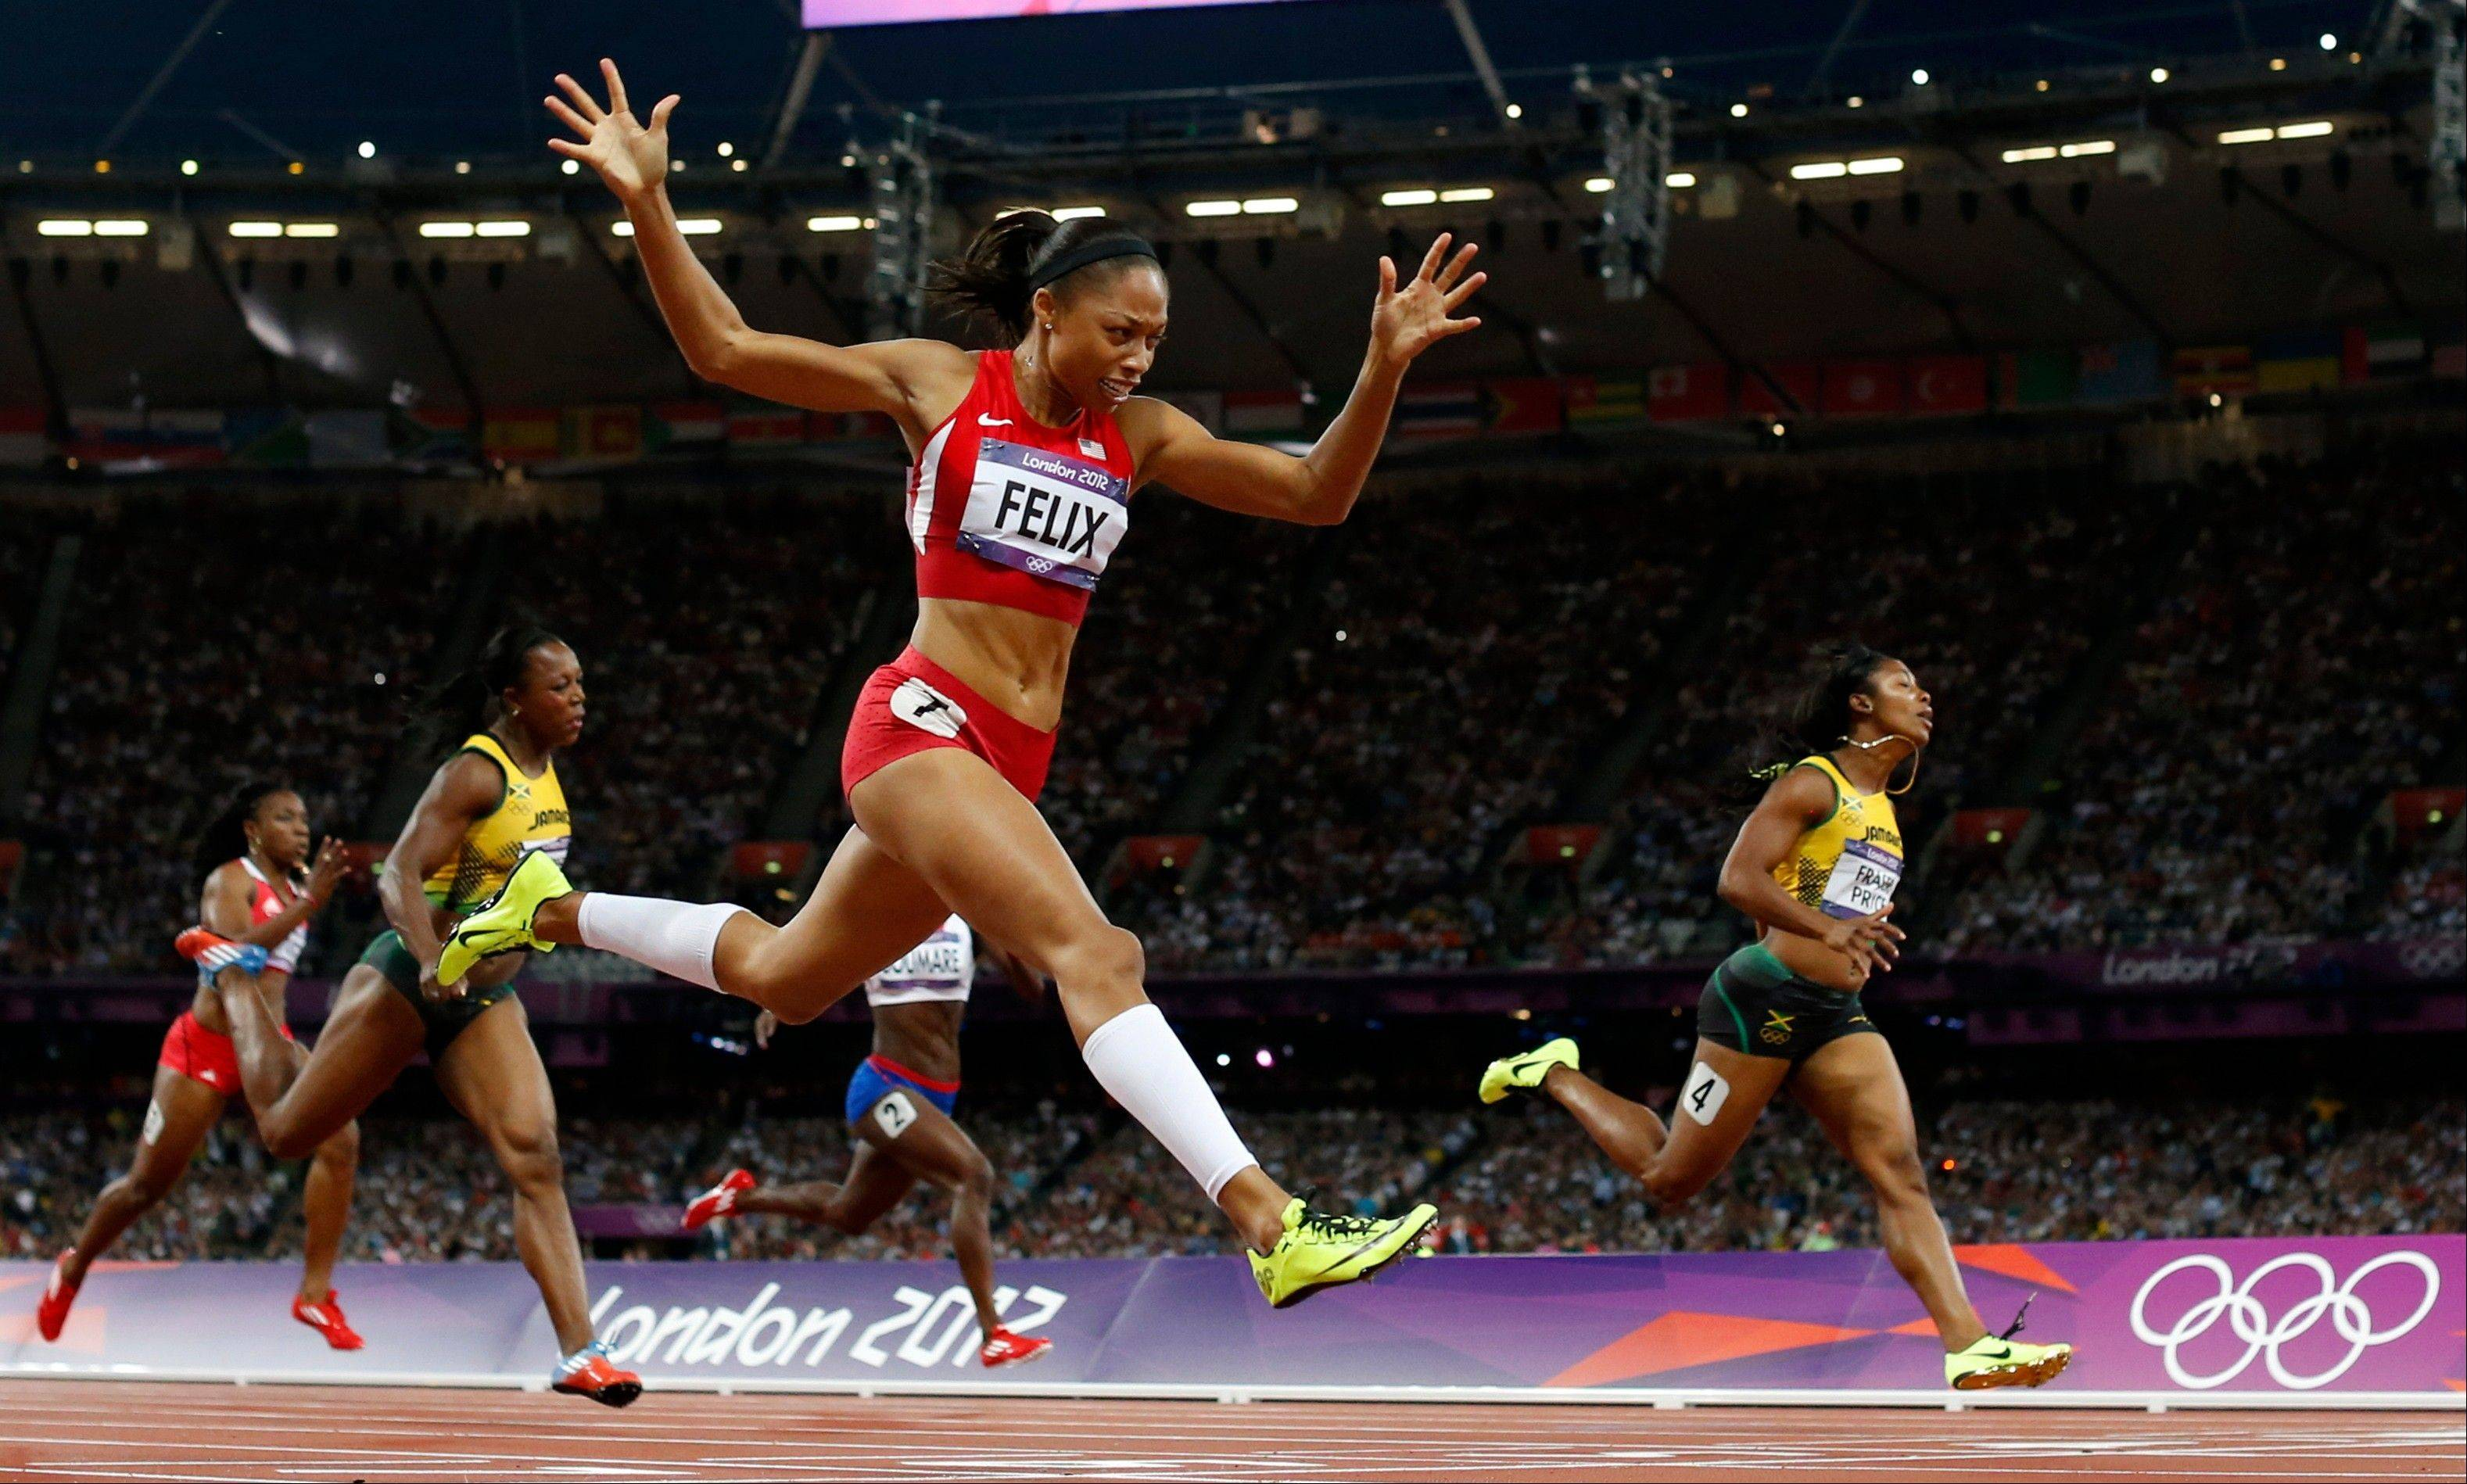 United States' Allyson Felix, second from right, crosses the finish line to win gold ahead of Jamaica's Shelly-Ann Fraser-Pryce, right, in the women's 200-meter final during the athletics in the Olympic Stadium at the 2012 Summer Olympics, London, Wednesday, Aug. 8, 2012.